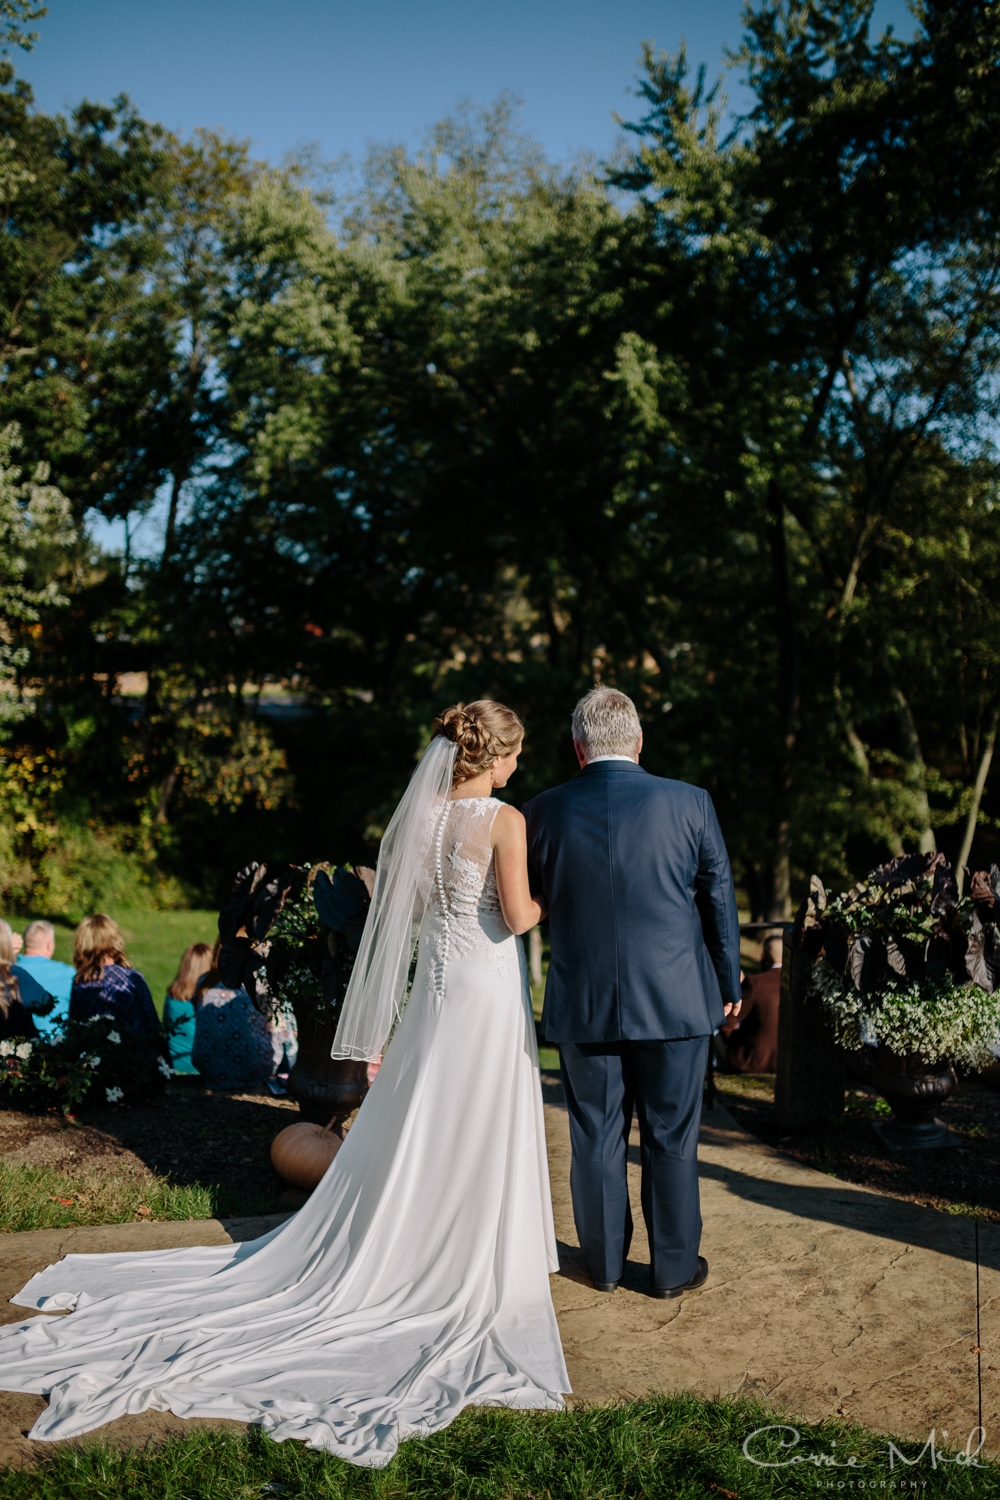 Clary Gardens Wedding - Portland, Oregon Photographer - Corrie Mick Photography-150.jpg